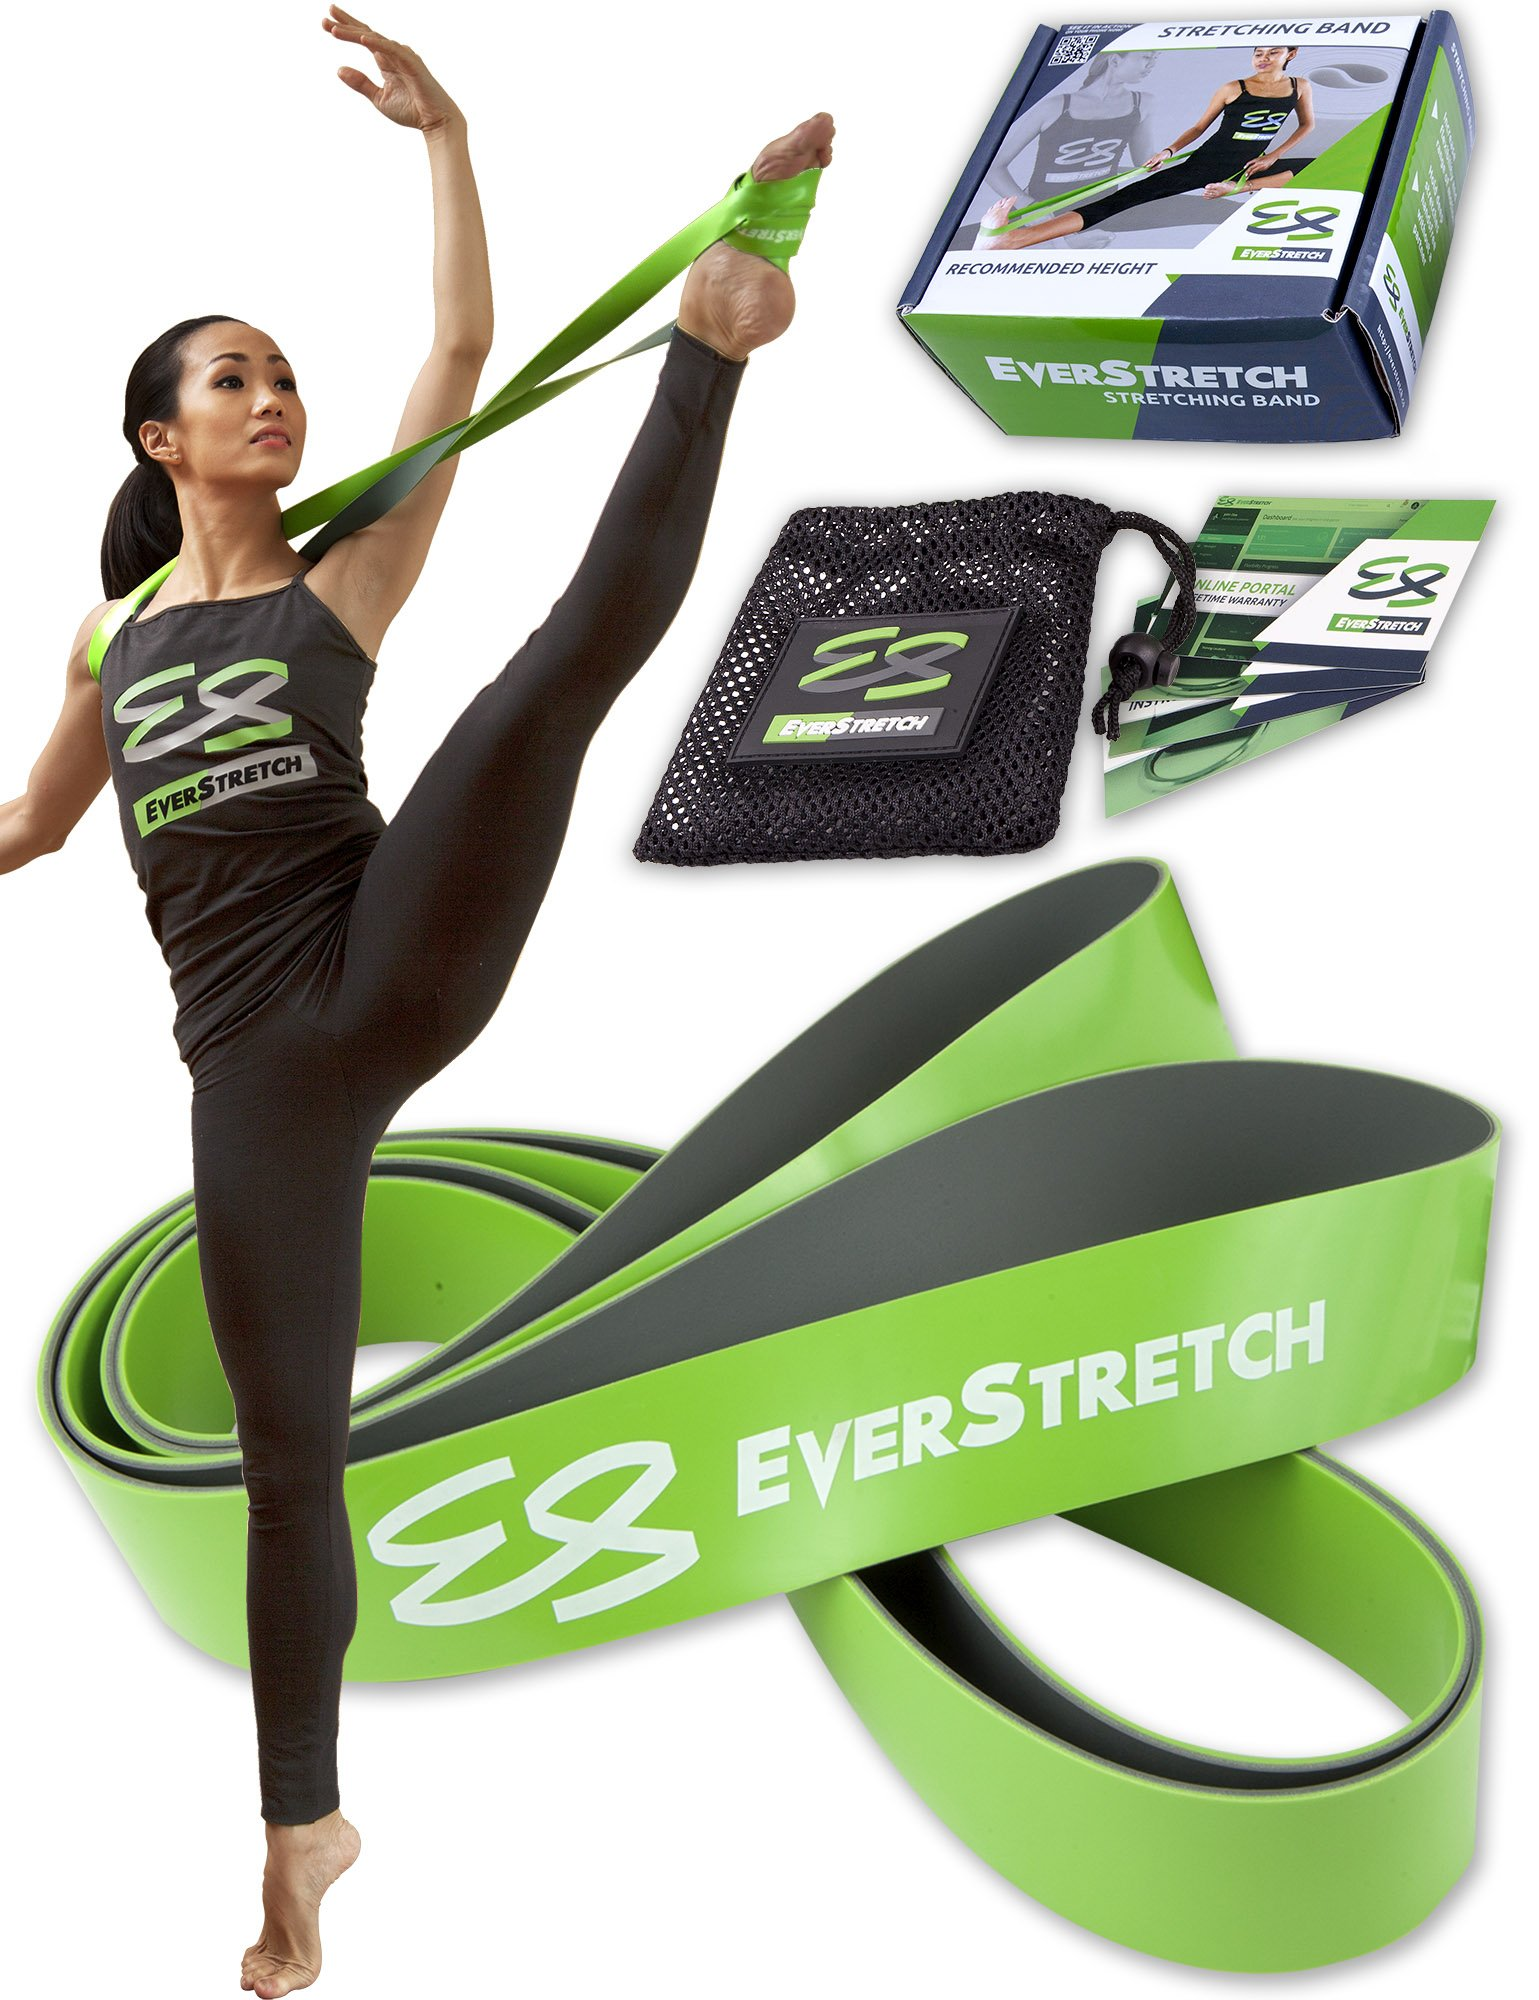 Ballet Stretch Band by EverStretch, don't settle for less: Premium 2-layer Dance Stretch Band for Hands Free Flexibility Training. Ballet Band Stretching Equipment for Dance, Cheer and Gymnastics. by EverStretch